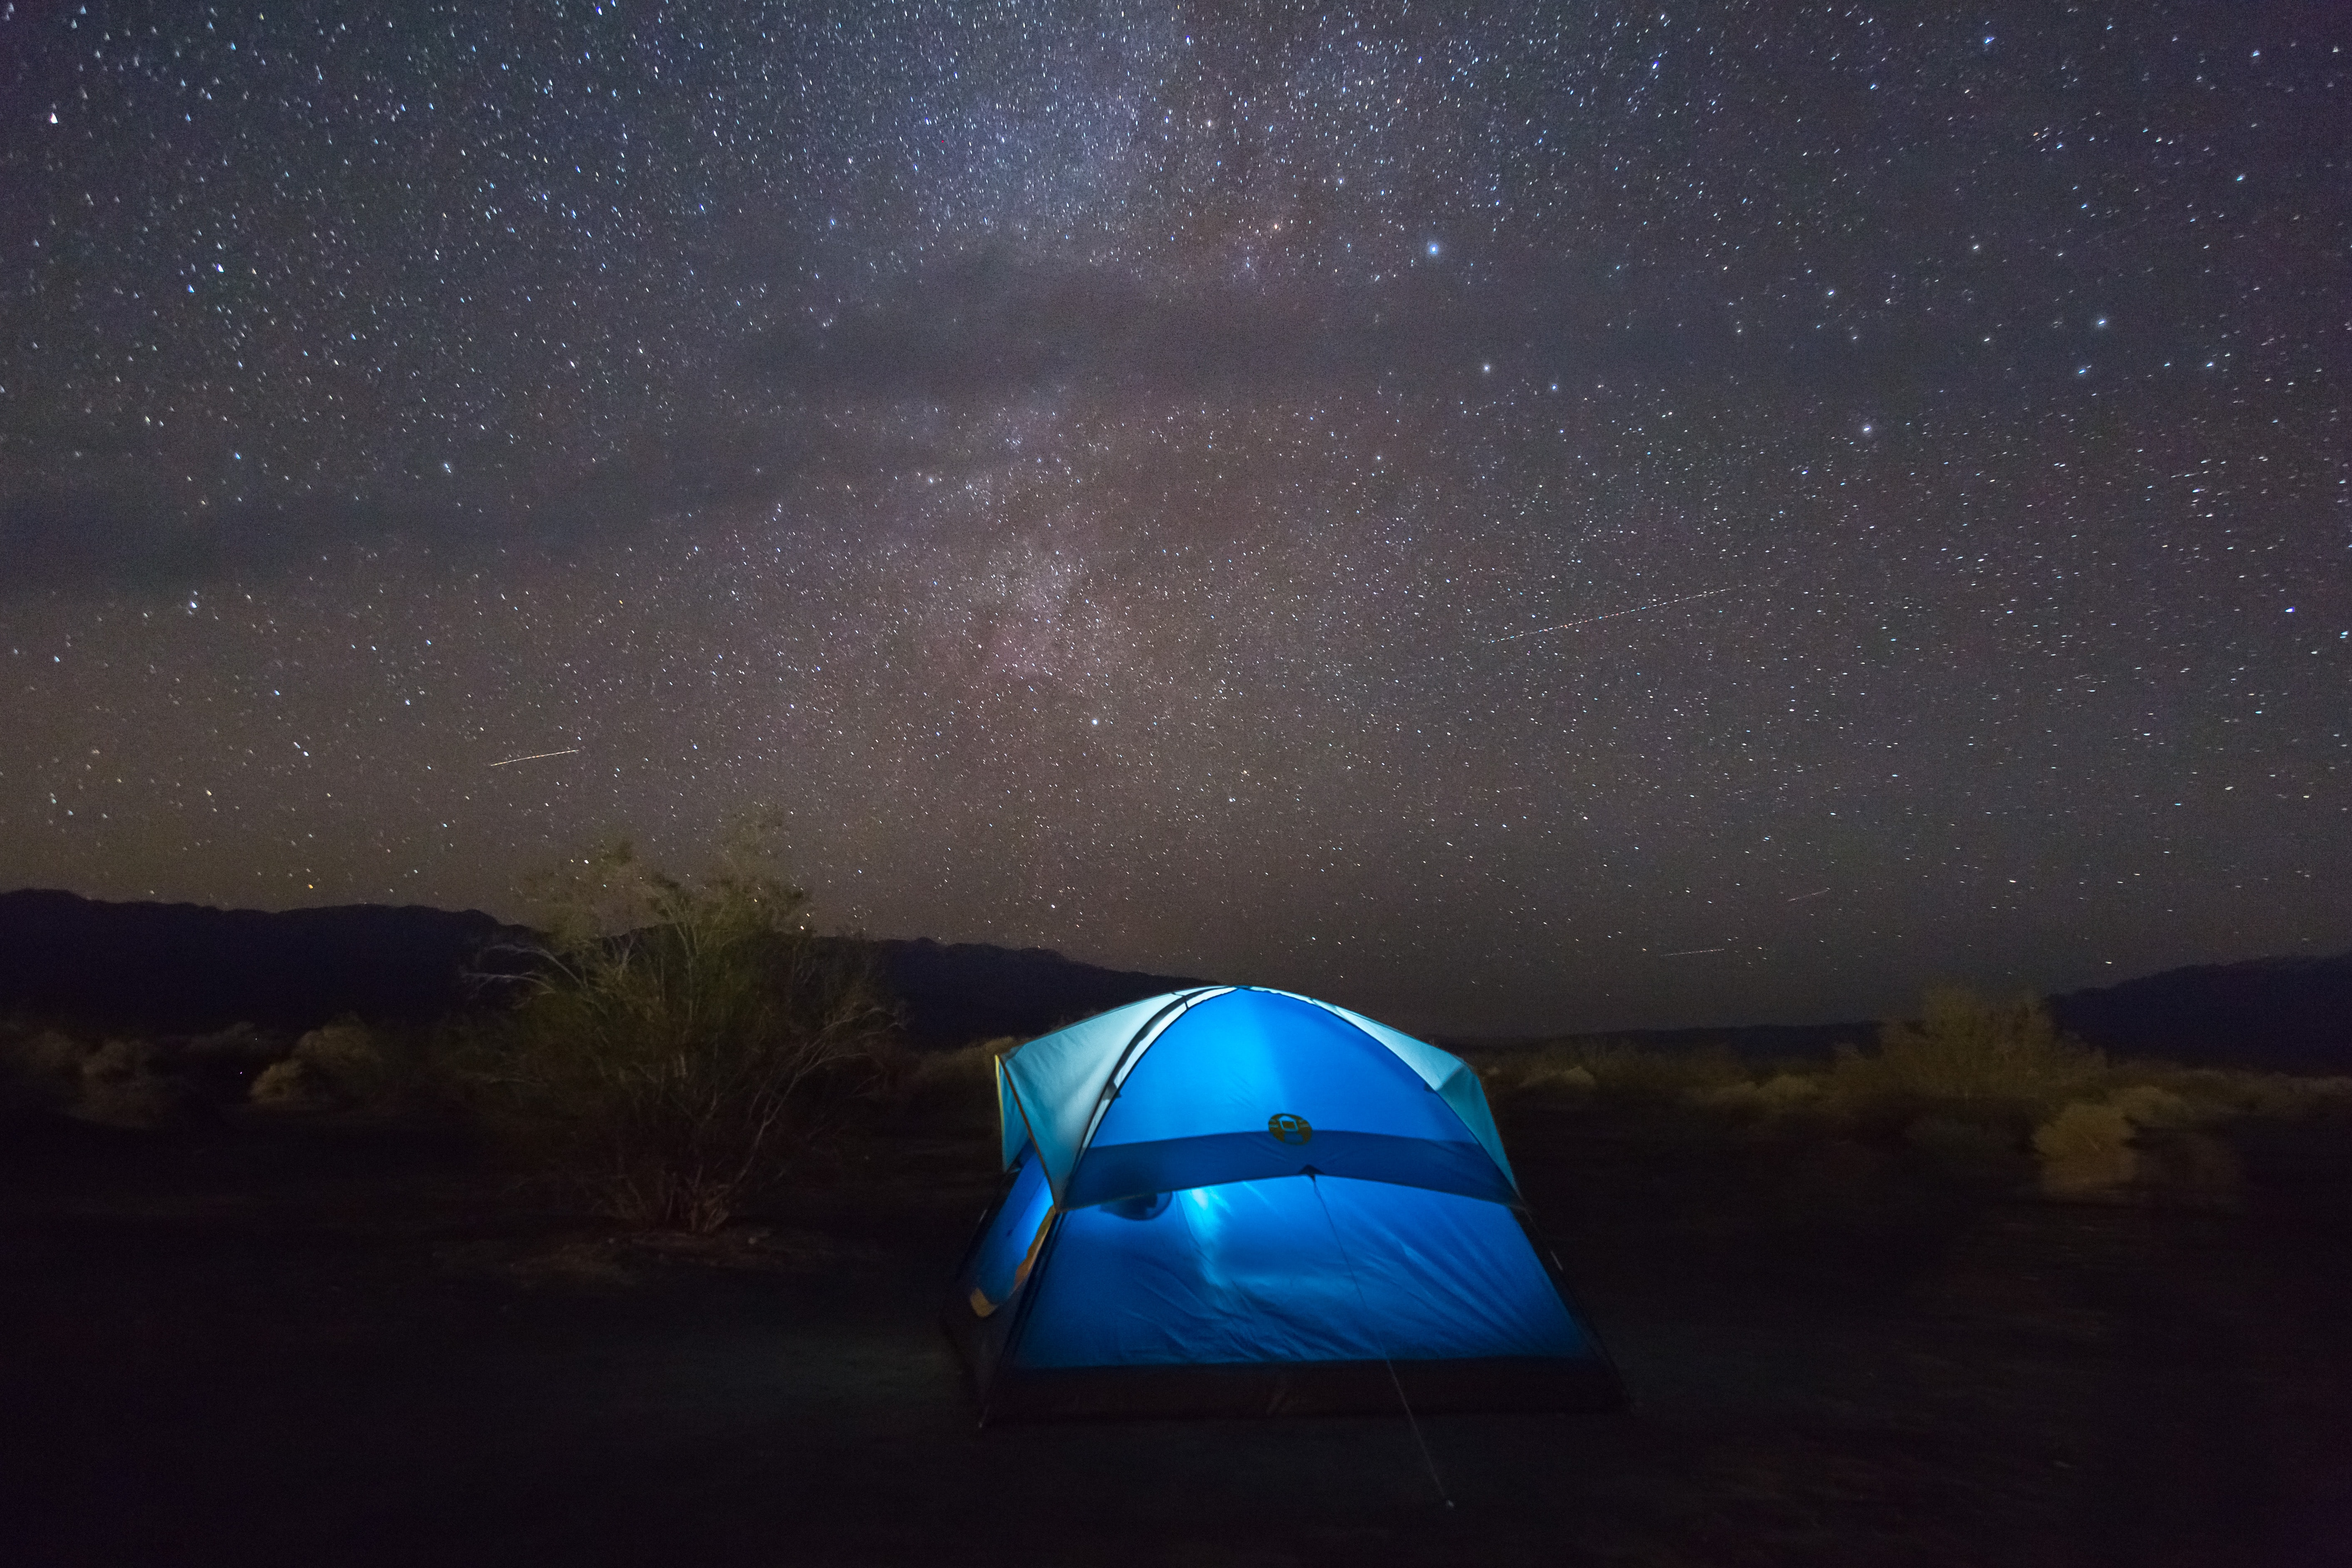 Blue tents glows in against a dark starry night sky